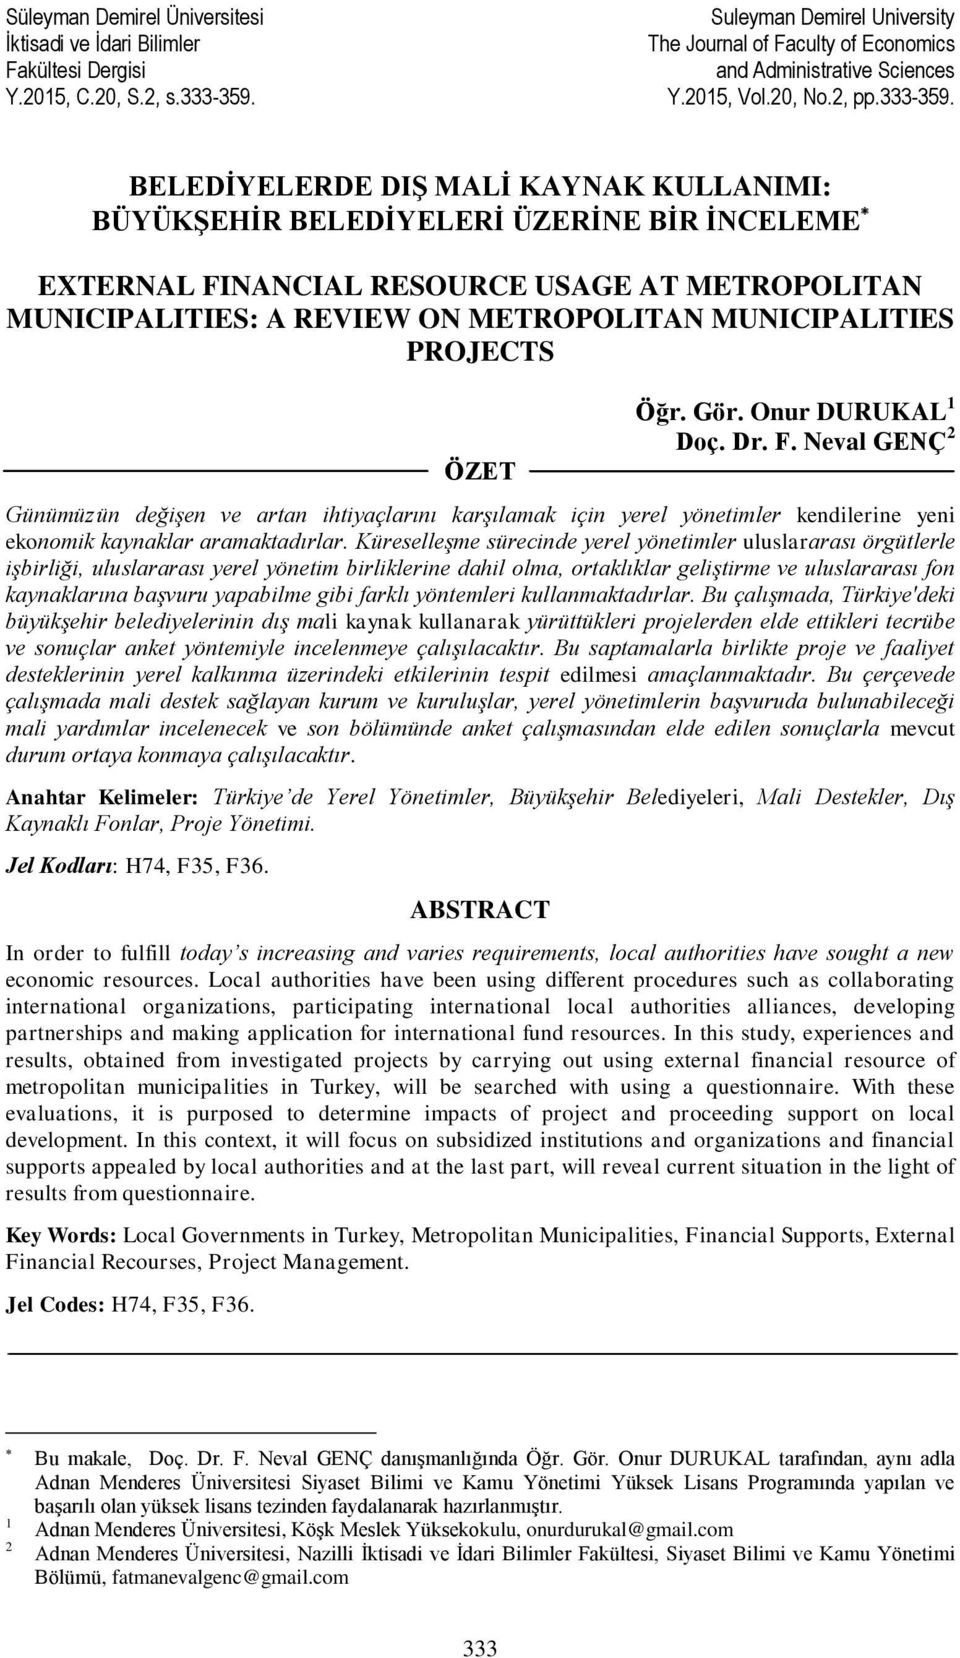 BELEDİYELERDE DIŞ MALİ KAYNAK KULLANIMI: BÜYÜKŞEHİR BELEDİYELERİ ÜZERİNE BİR İNCELEME EXTERNAL FINANCIAL RESOURCE USAGE AT METROPOLITAN MUNICIPALITIES: A REVIEW ON METROPOLITAN MUNICIPALITIES